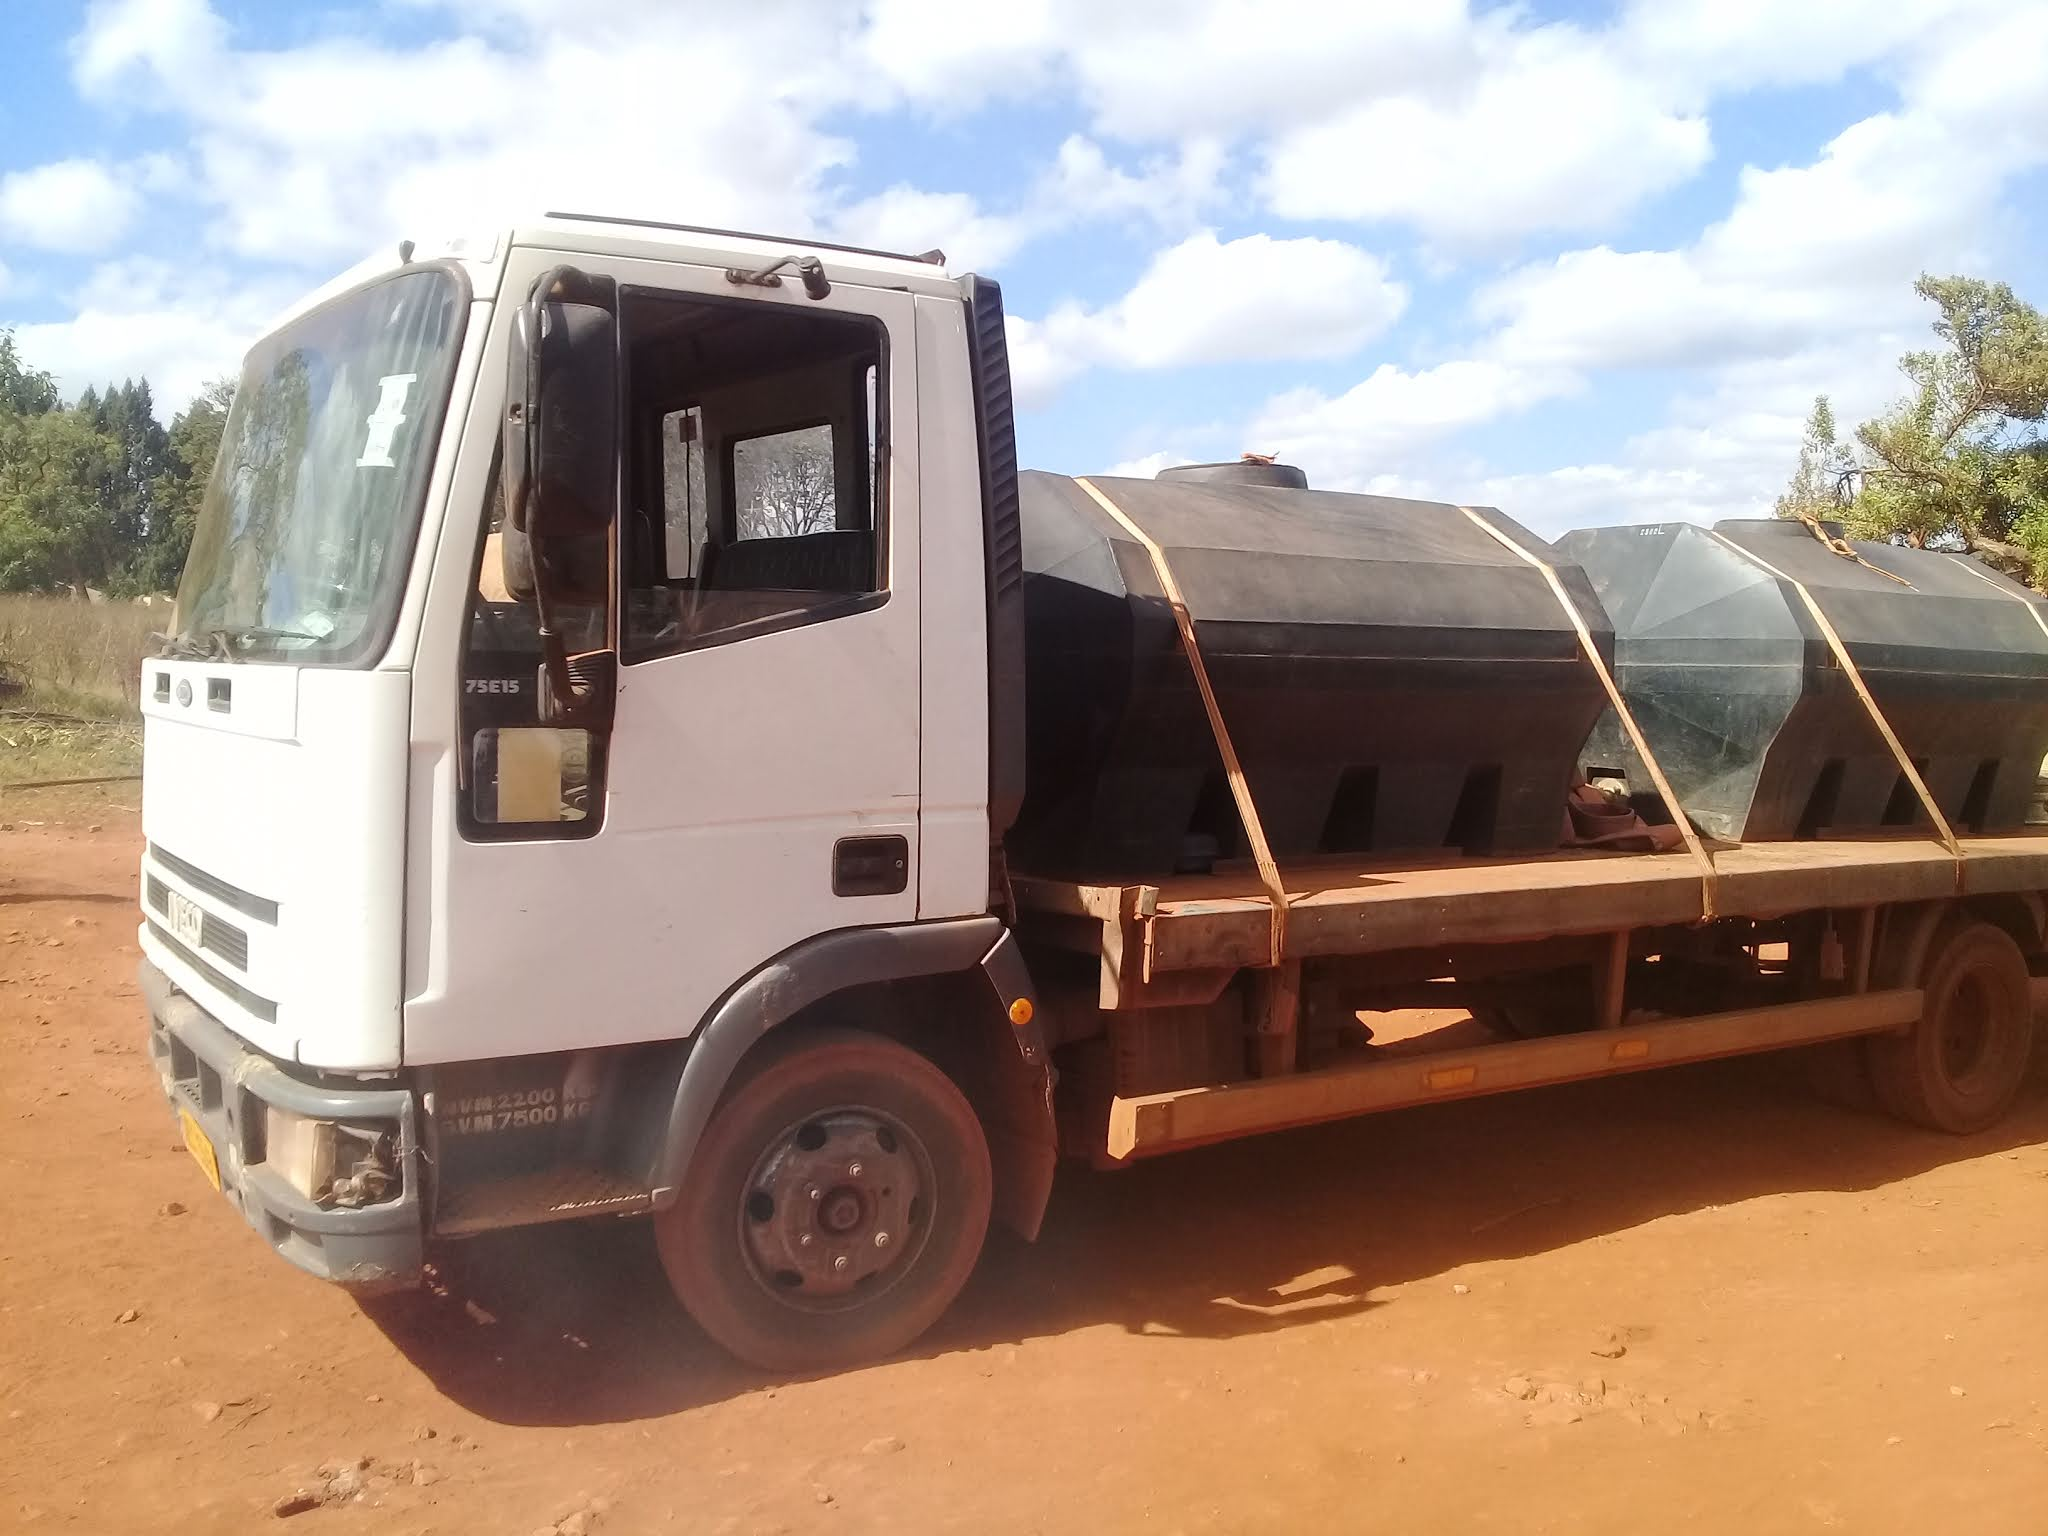 Harare Bulk Water Suppliers 0774114274 Bulk Water Delivery 24 Hour Breakdown Towing Recovery